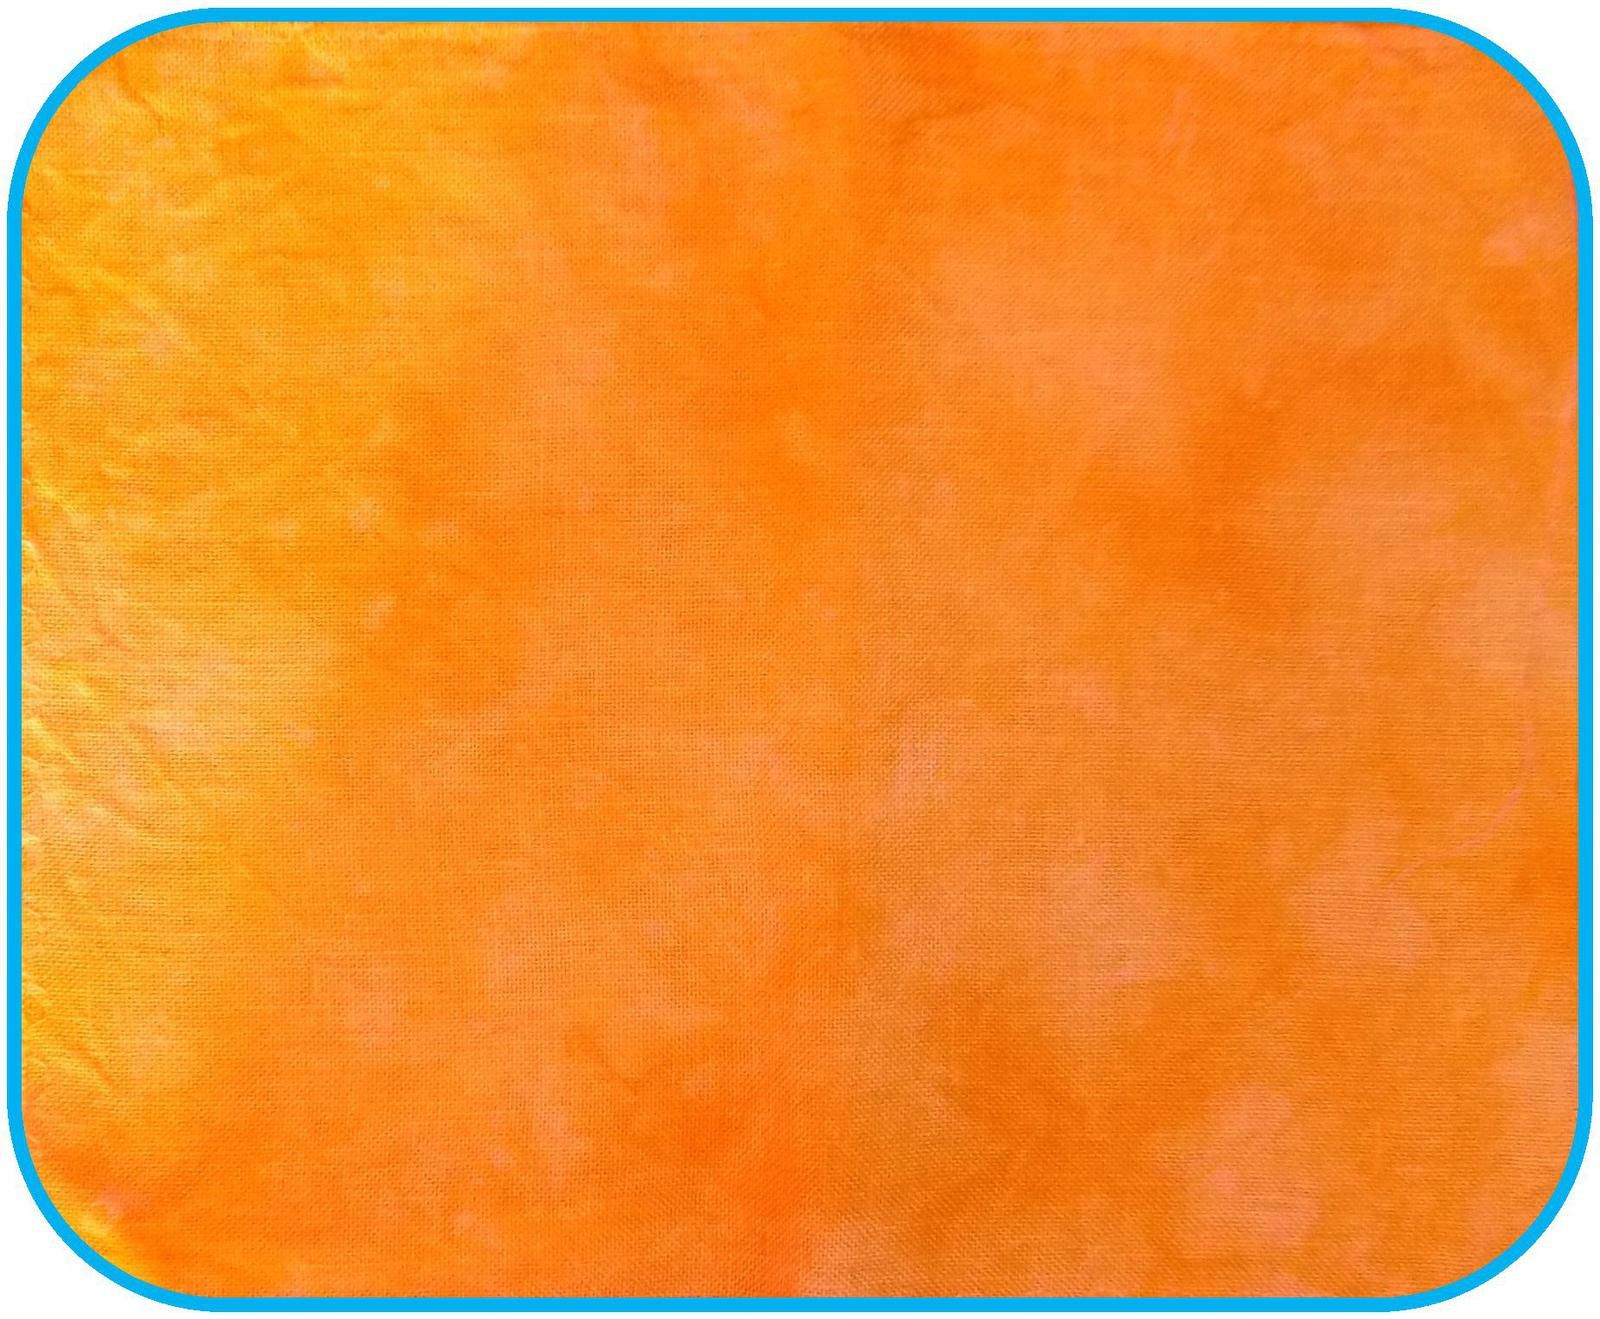 Orange - Lin 11 fils - 30x25 cm - 4.5 € - Qté 2